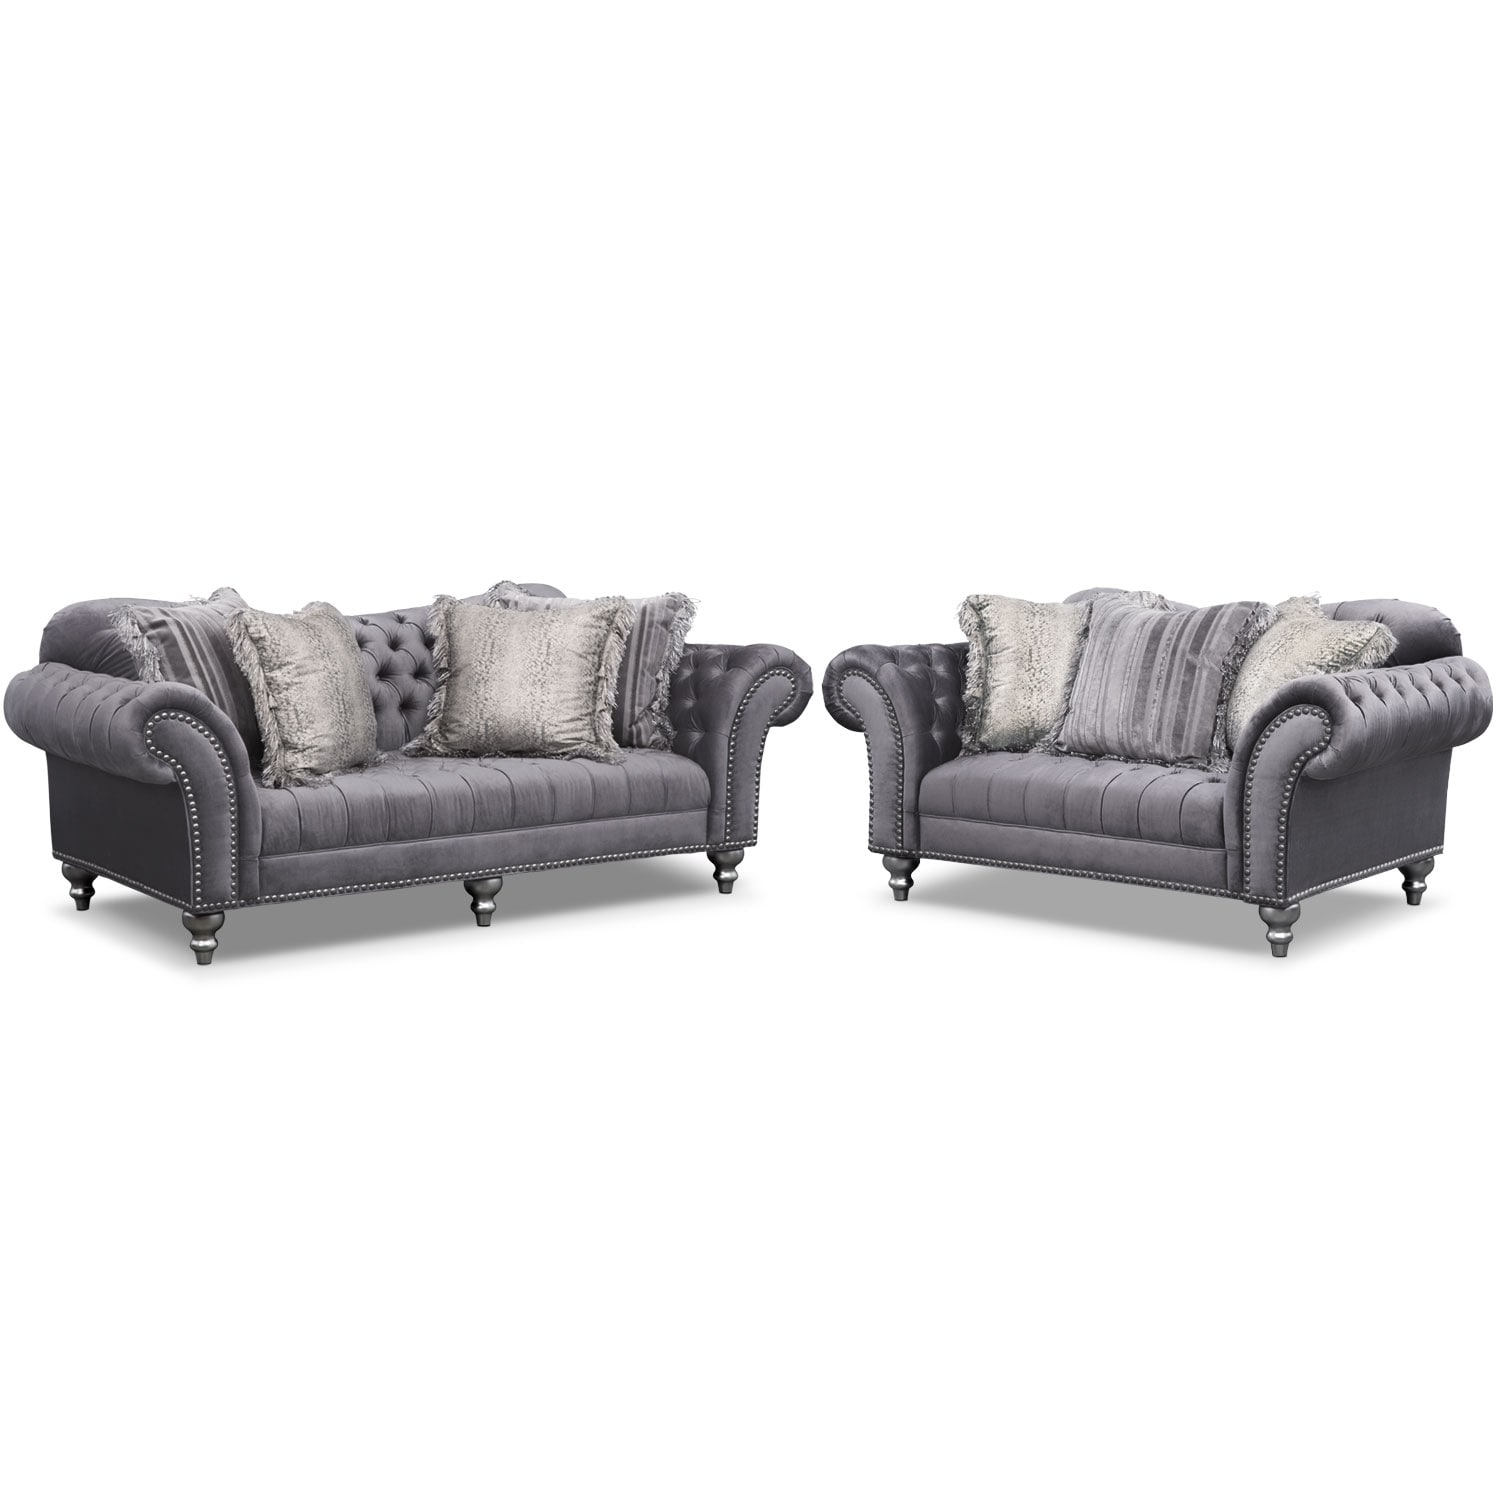 Living Room Furniture - Brittney Sofa and Loveseat Set - Gray